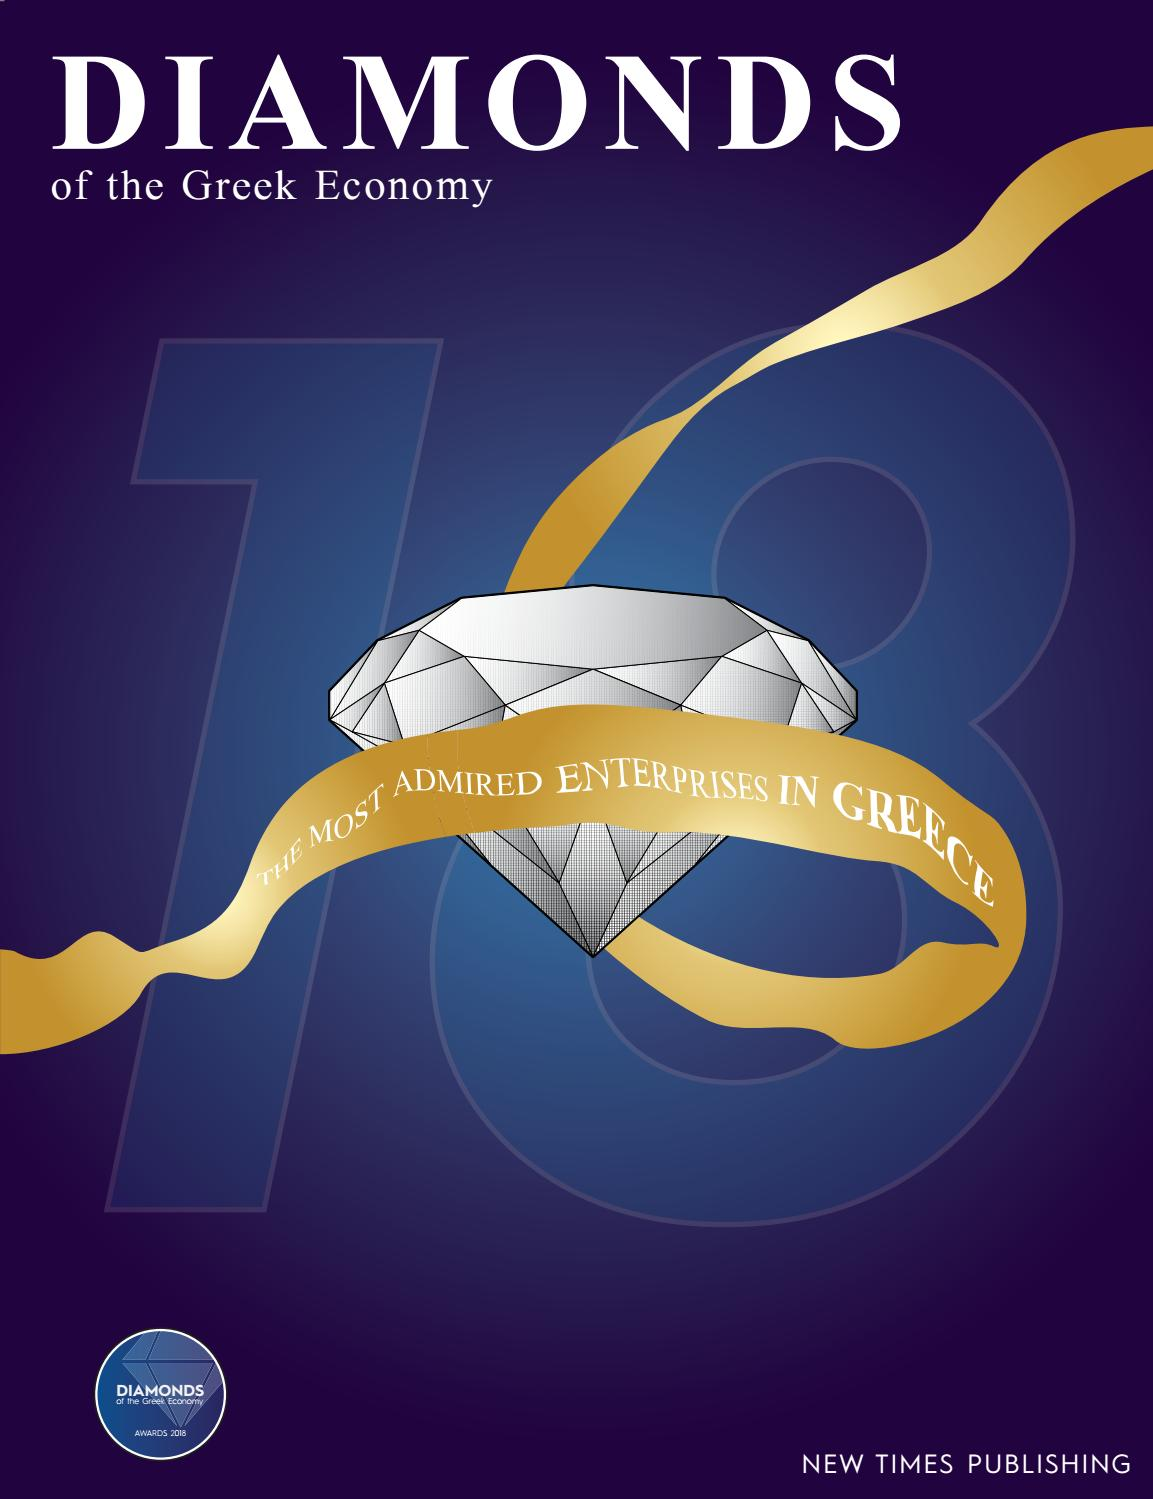 a02ffd13682 Diamonds of the Greek Economy 2018 by NewTimes - issuu